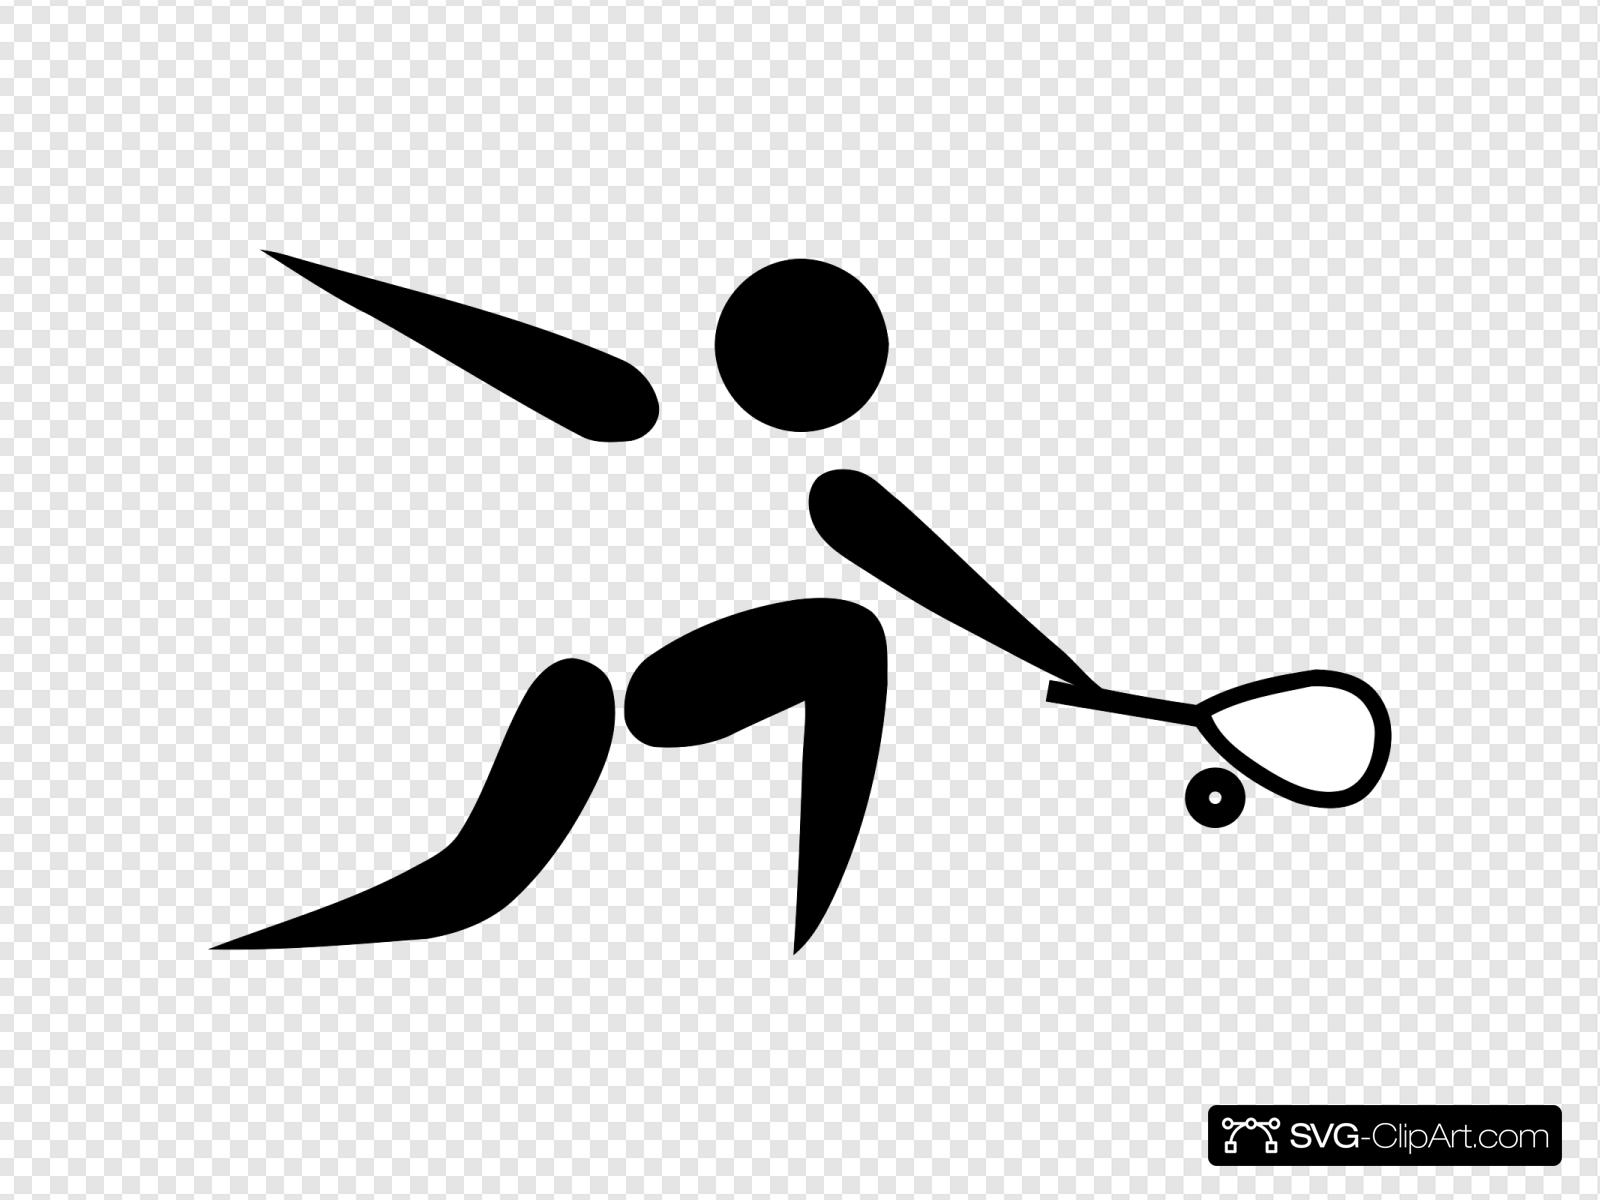 Olympic Sports Squash Pictogram Svg Vector Olympic Sports Squash Pictogram Clip Art Svg Clipart